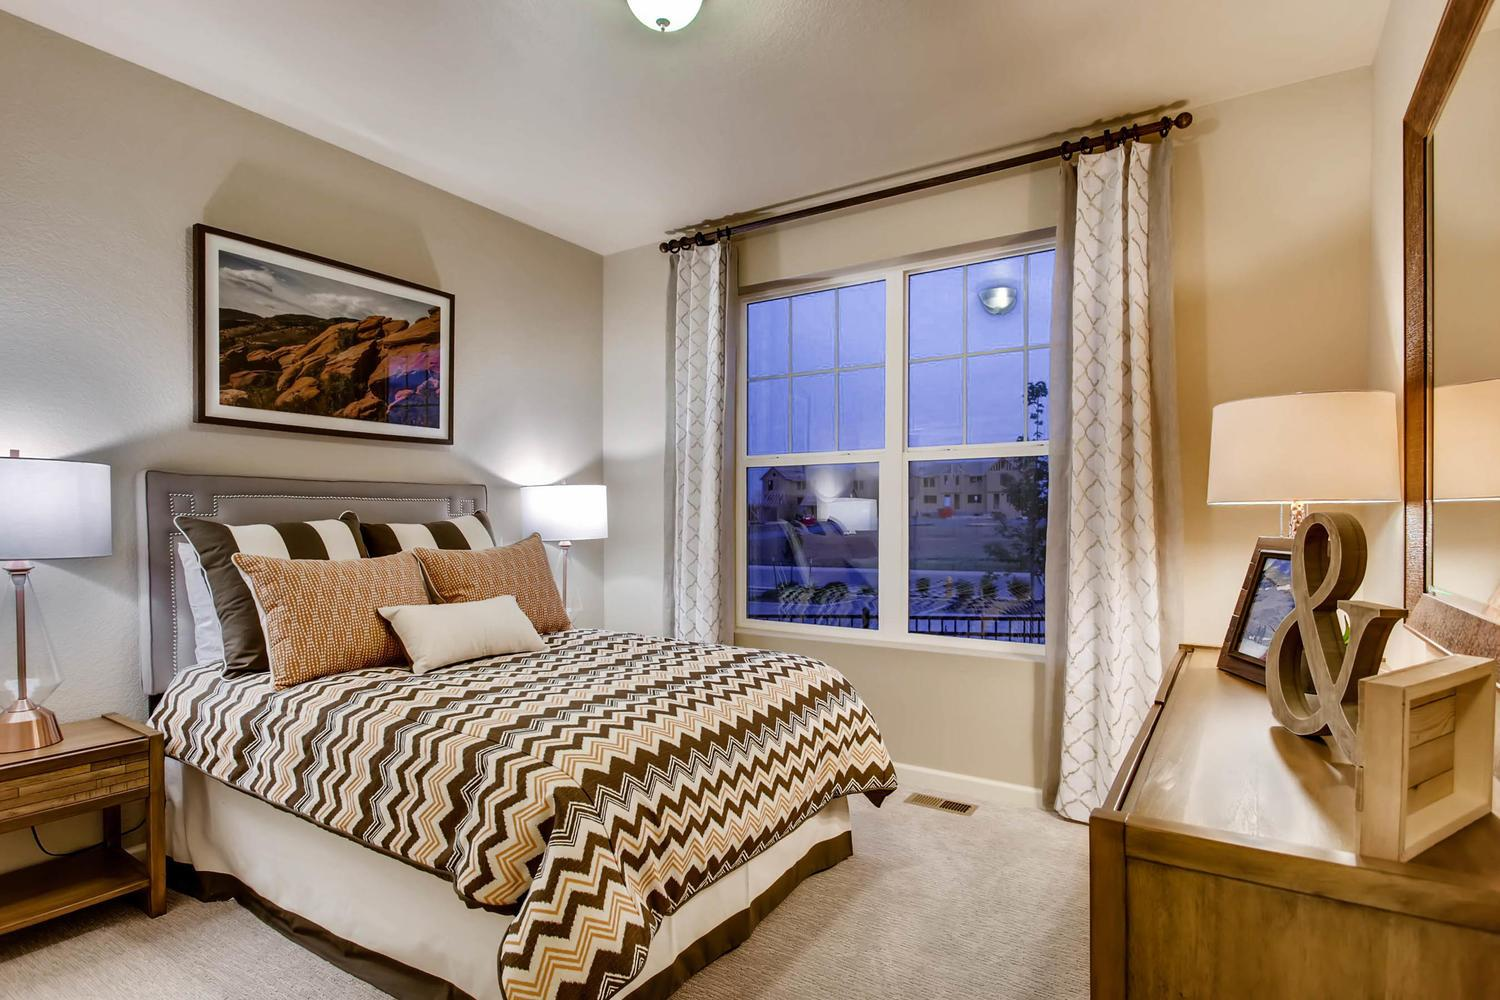 Bedroom featured in the Lakewood II By RichfieldHomes in Fort Collins-Loveland, CO